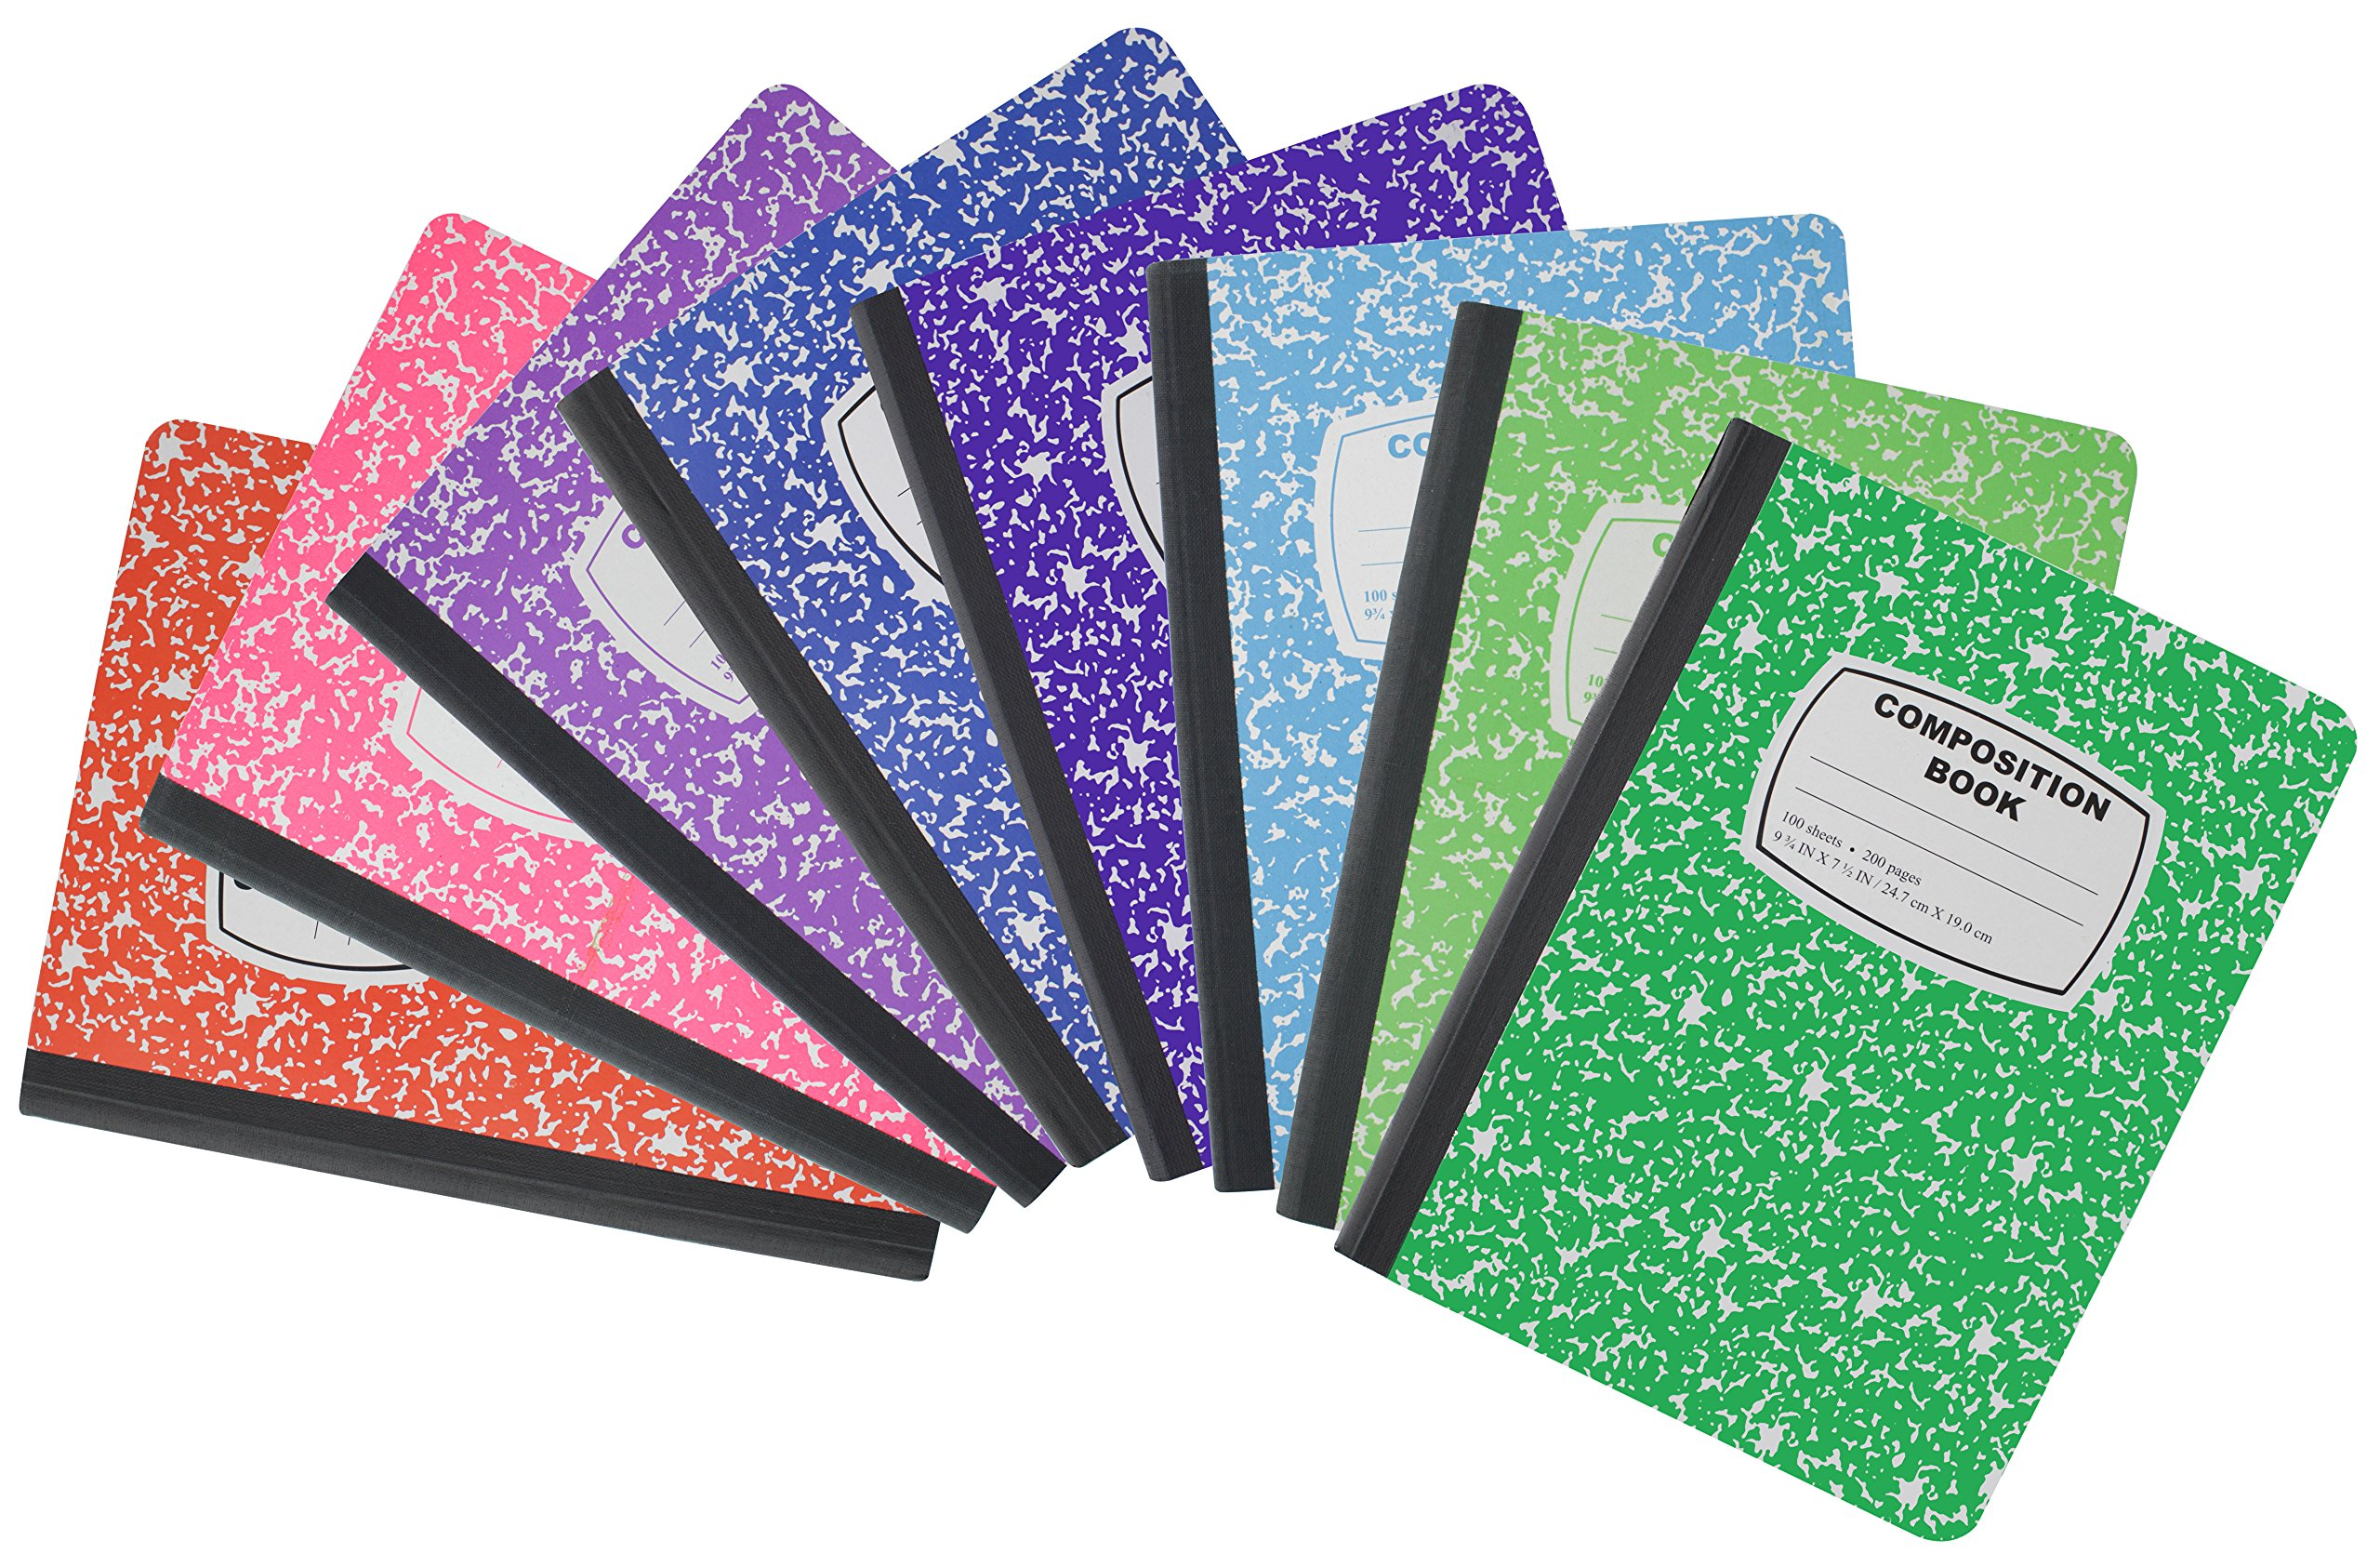 Emraw Dark/Neon Colors Cover Composition Book with 100 Sheets of Wide Ruled White Paper (8 Pack)